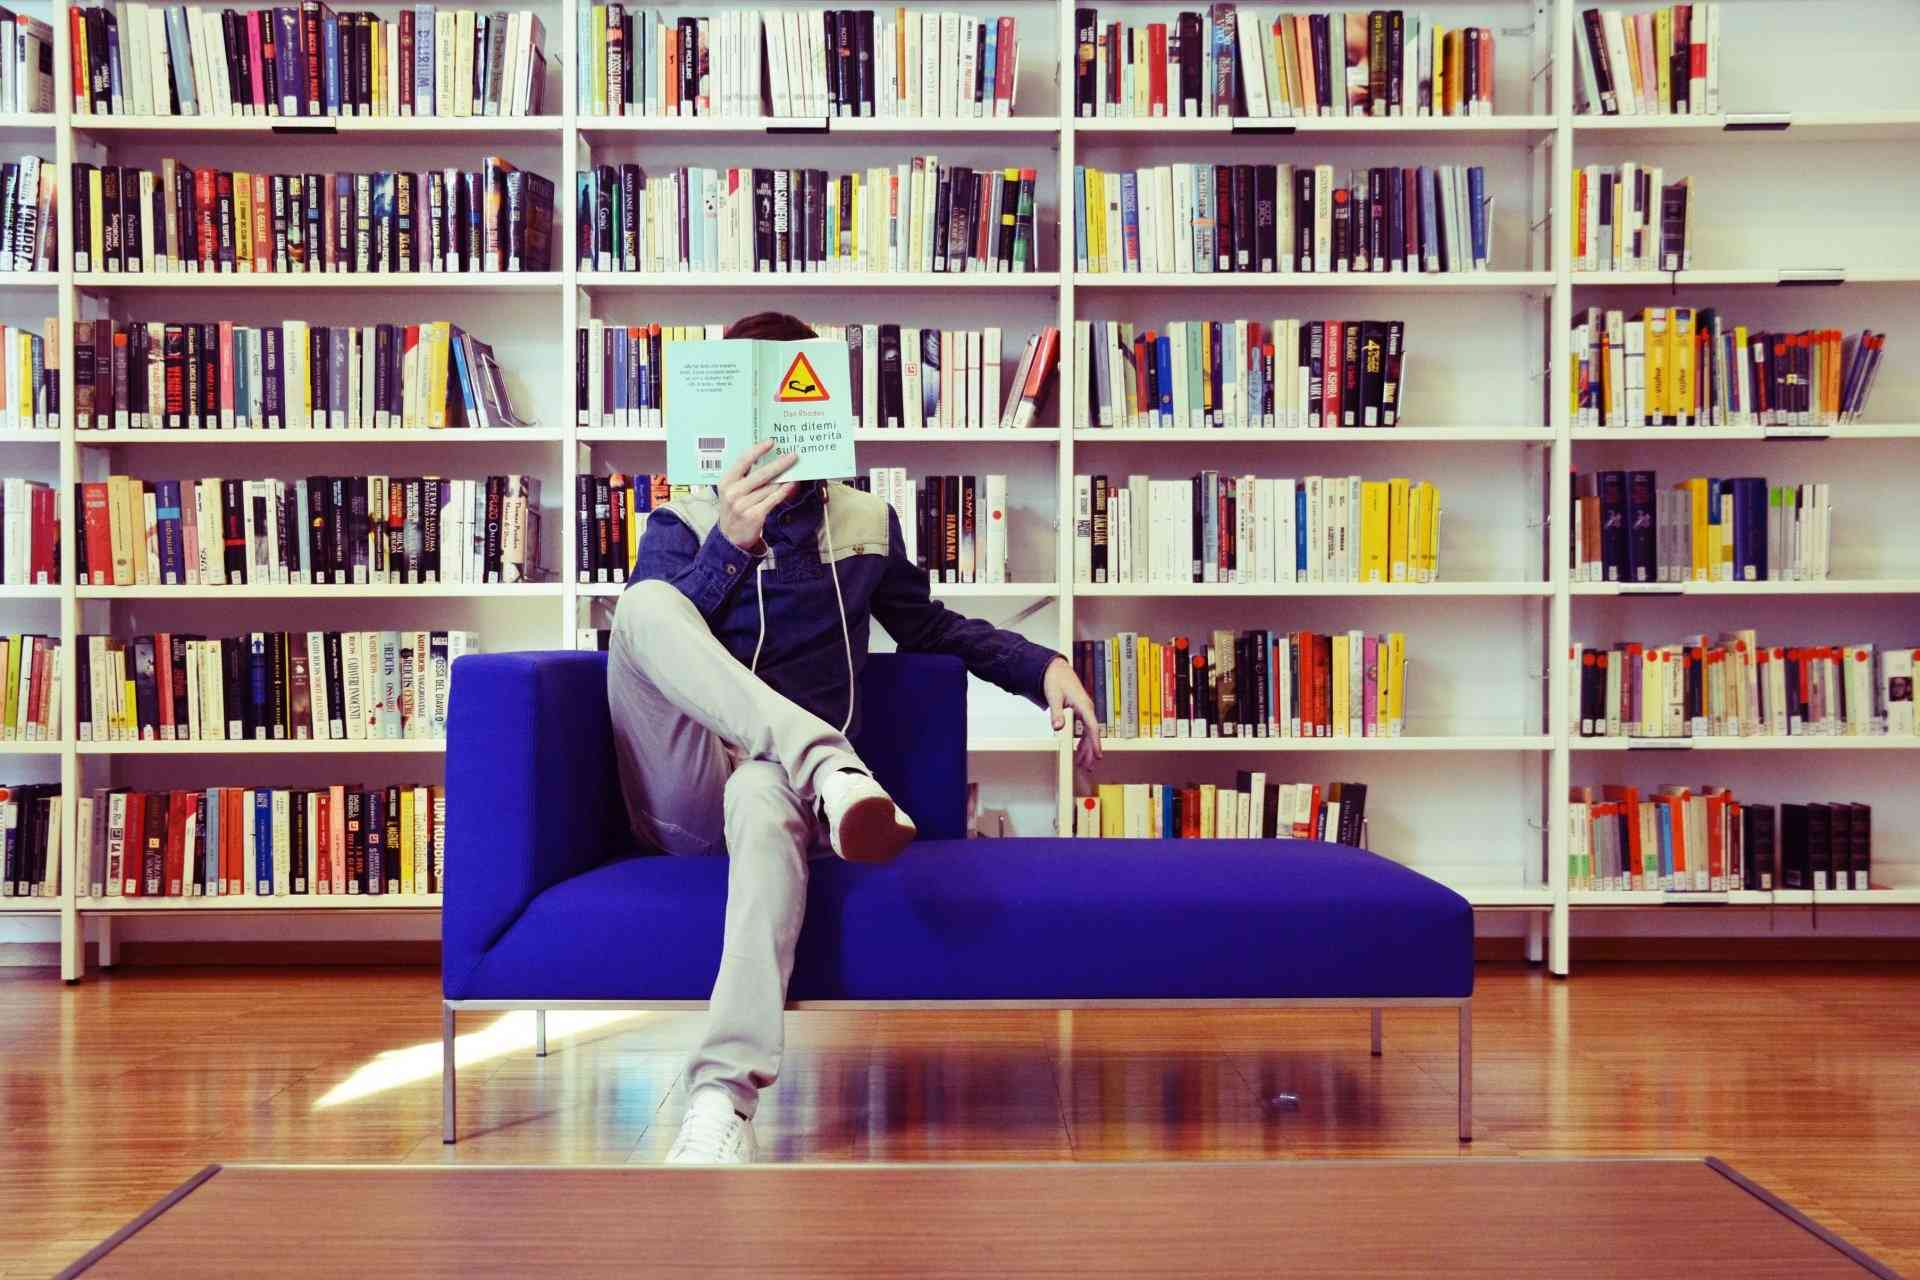 Image result for reading books images hd